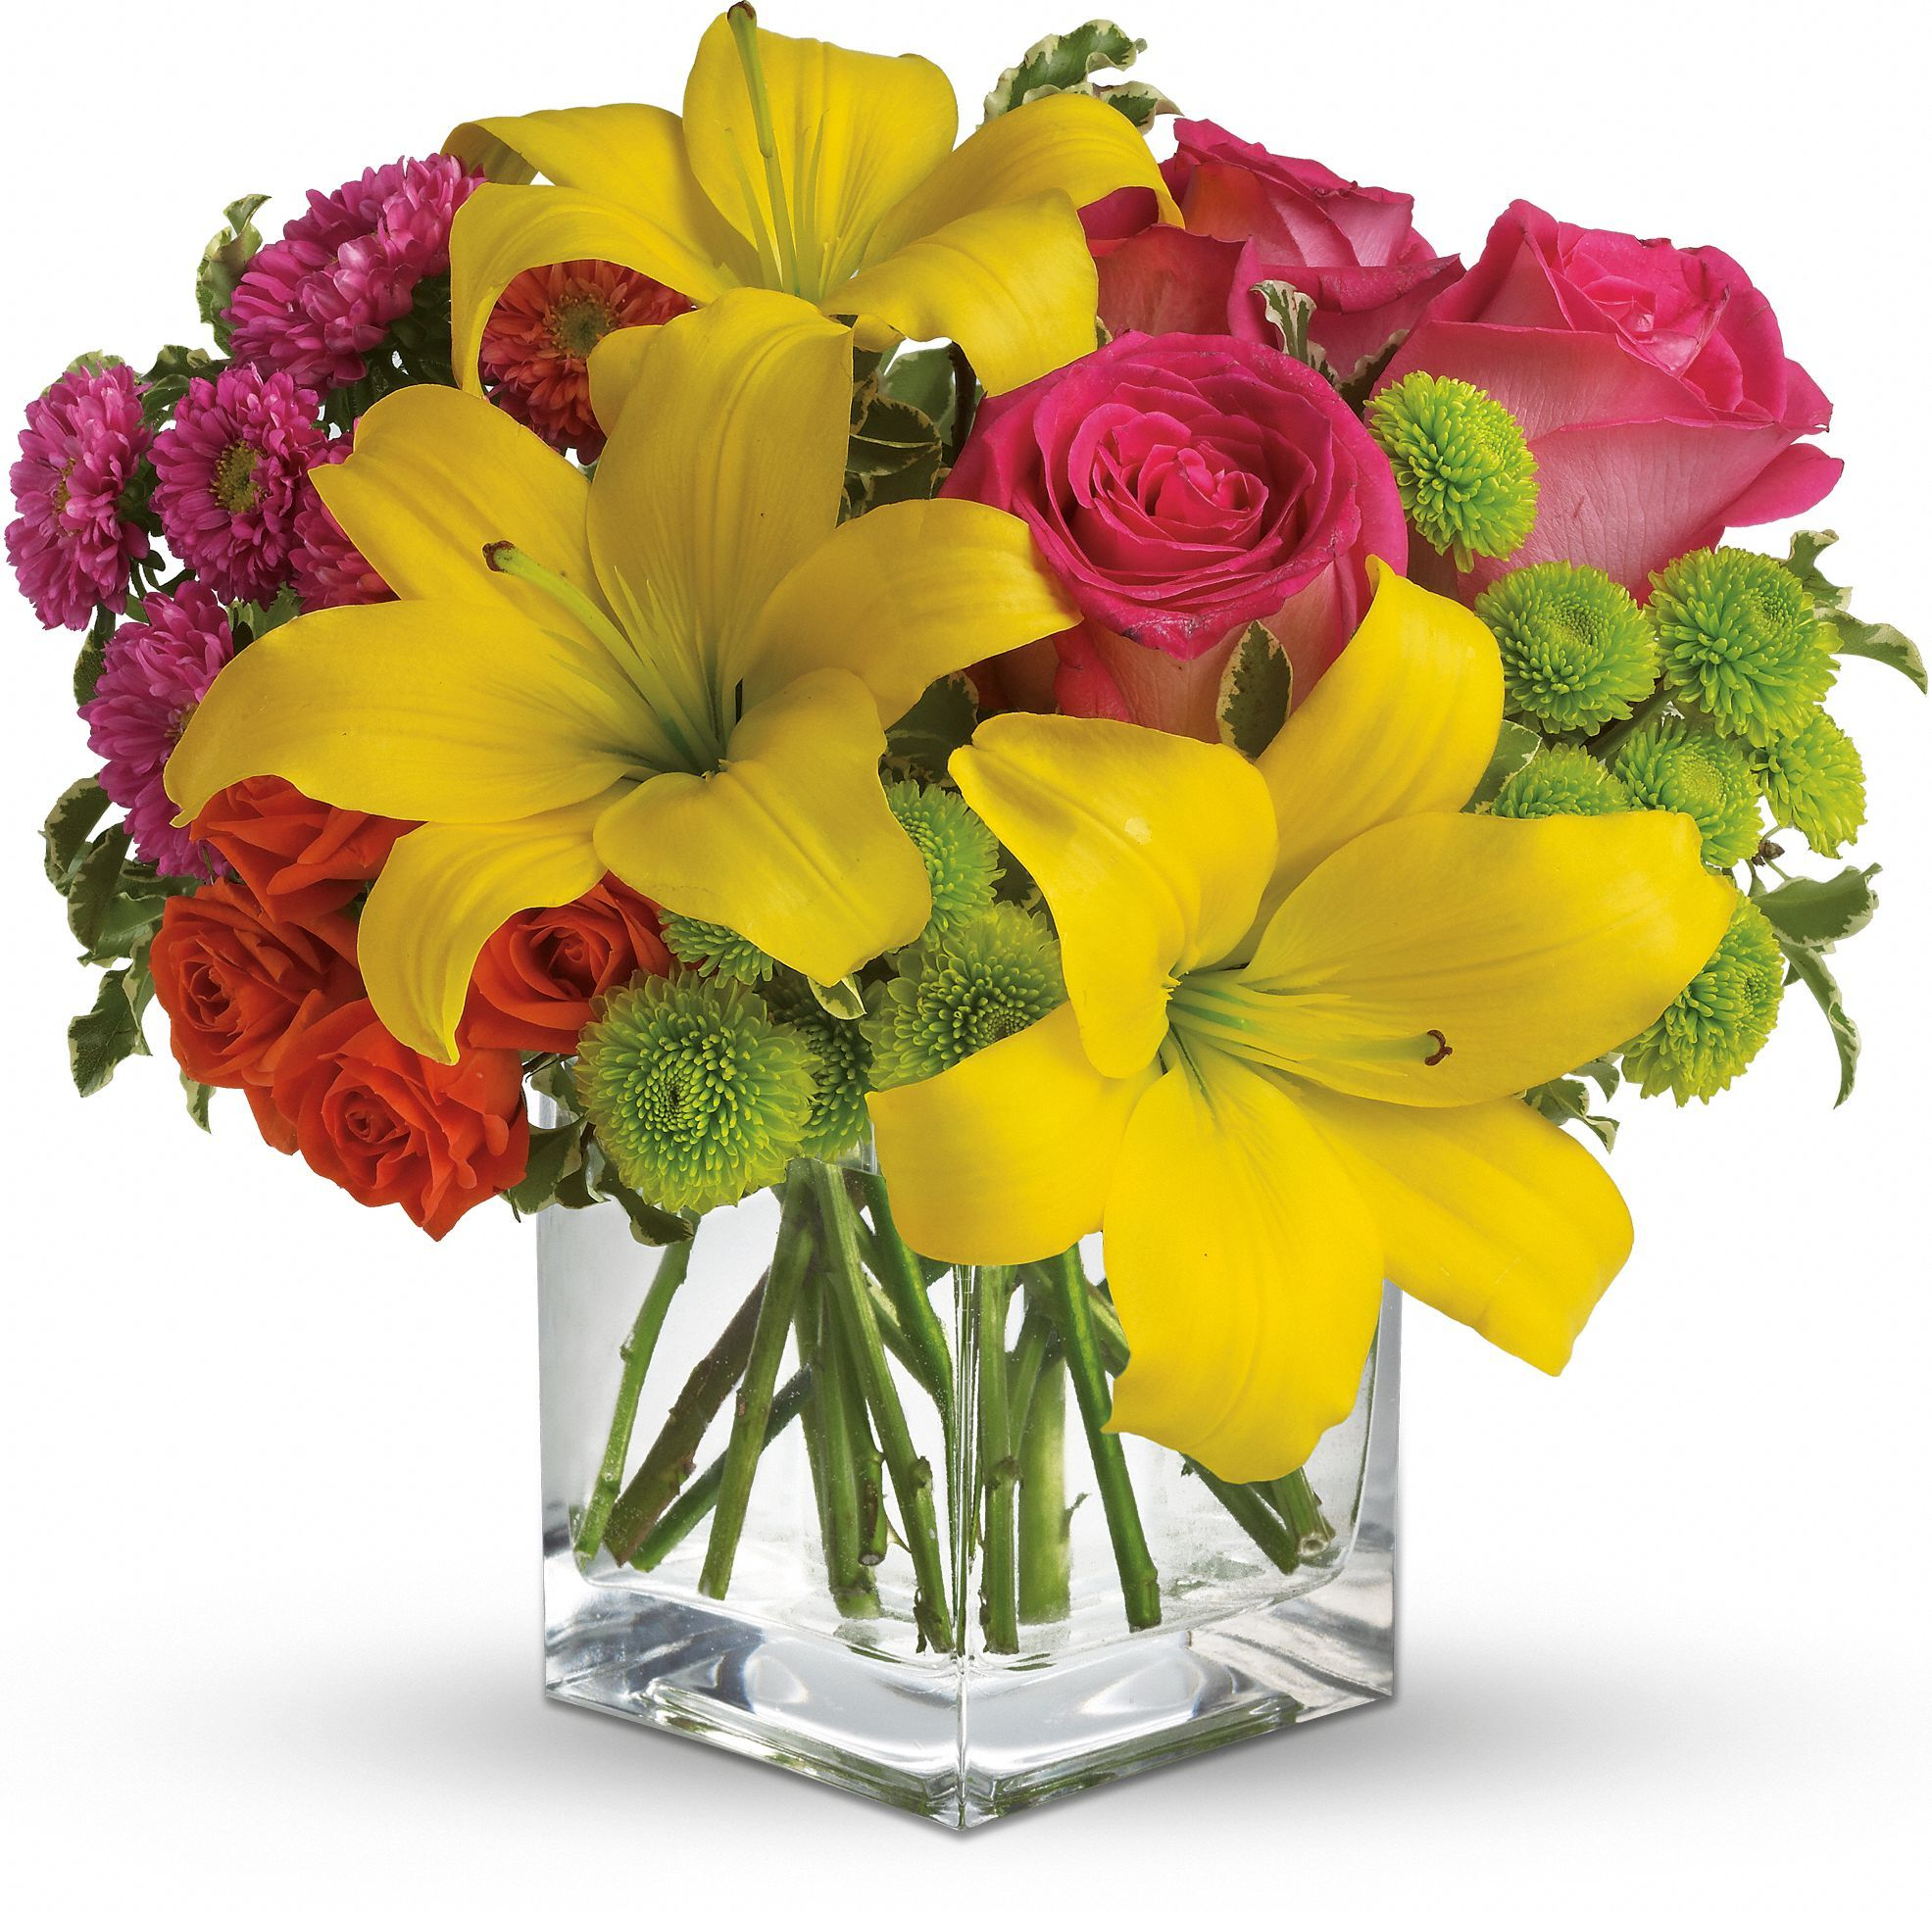 Telefloras Sunsplash Save 25 On This Bouquet And Many Others With